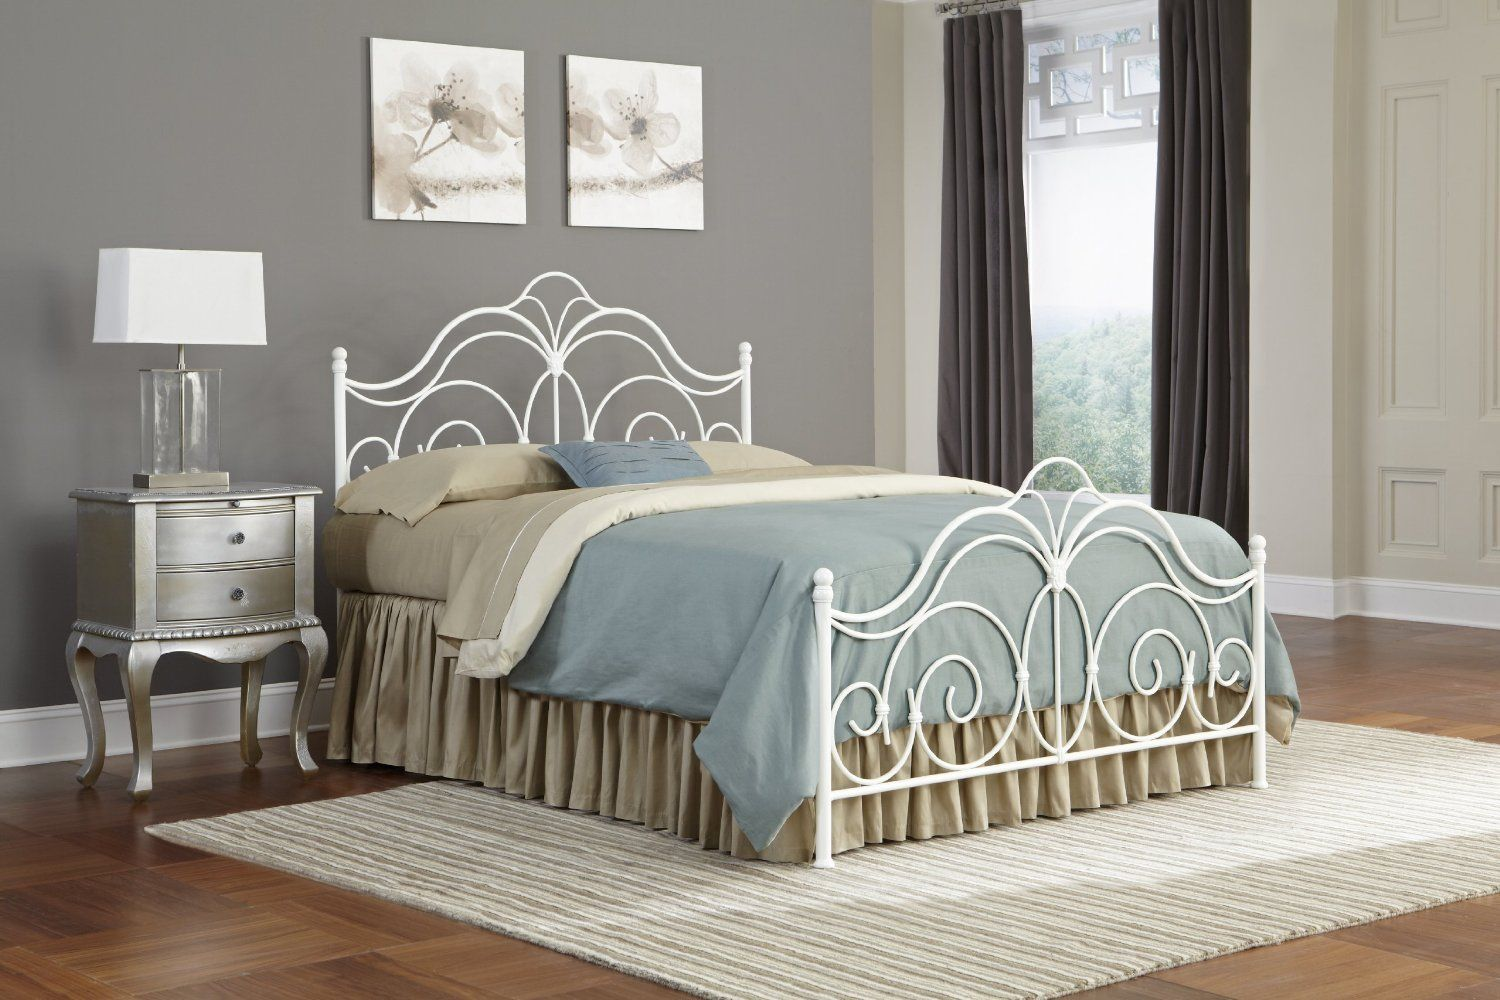 Best Bedroom Dexter Metal Headboard With Decorative Castings 400 x 300